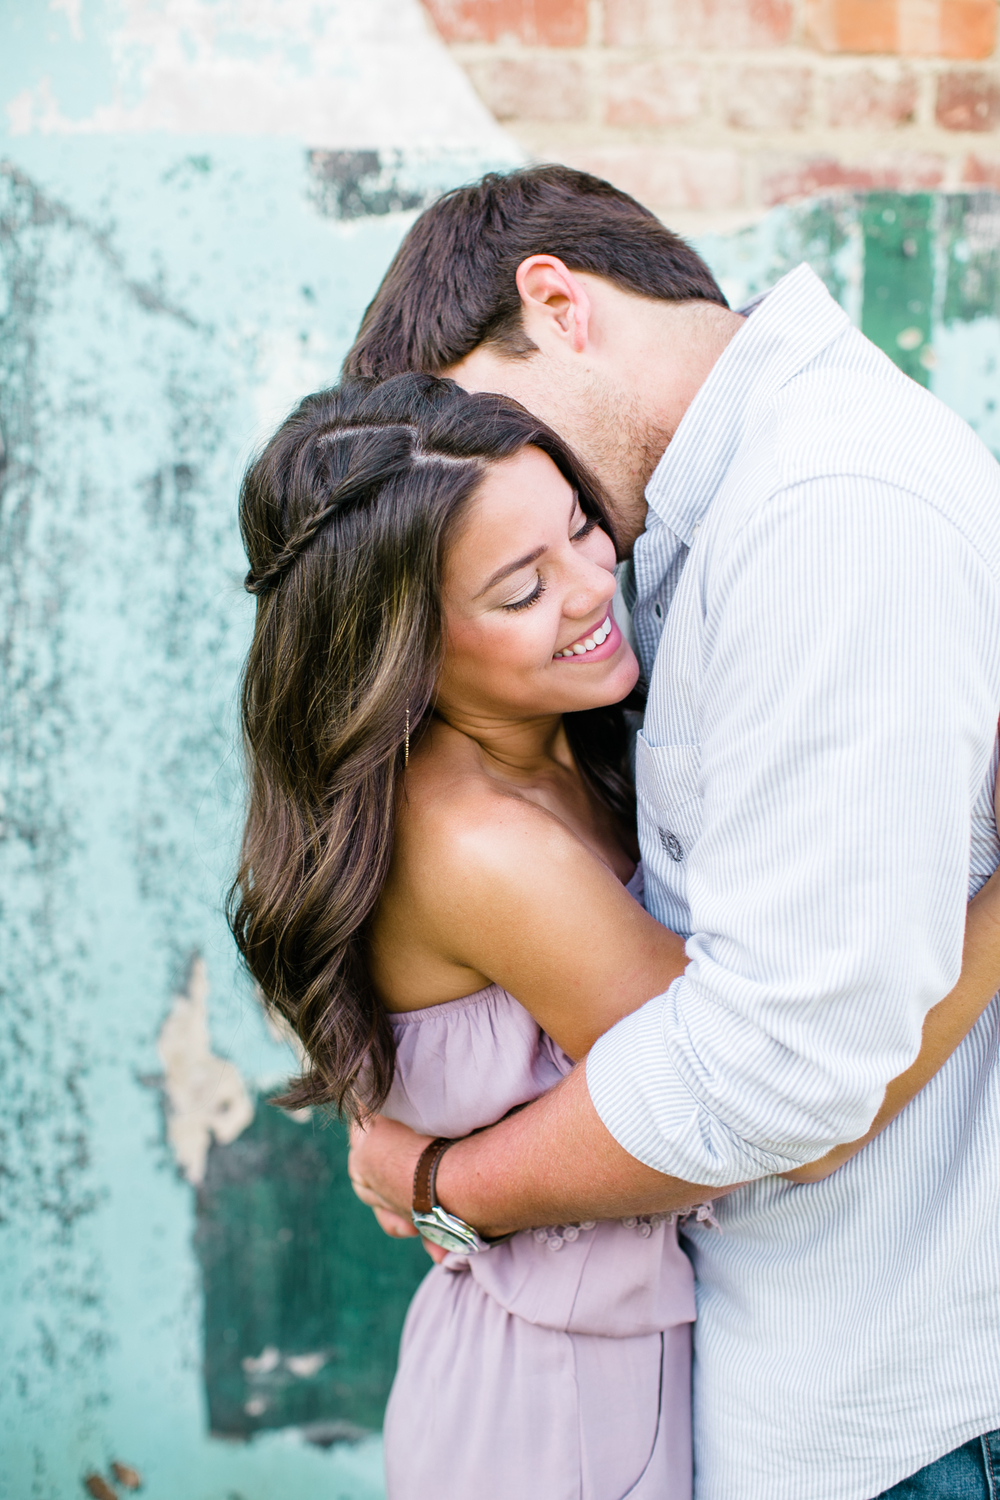 Browse Profiles & Photos of South Carolina Catholic Singles and join CatholicMatch.com, the clear leader in online dating for Catholics with more Catholic singles than any other Catholic dating site..